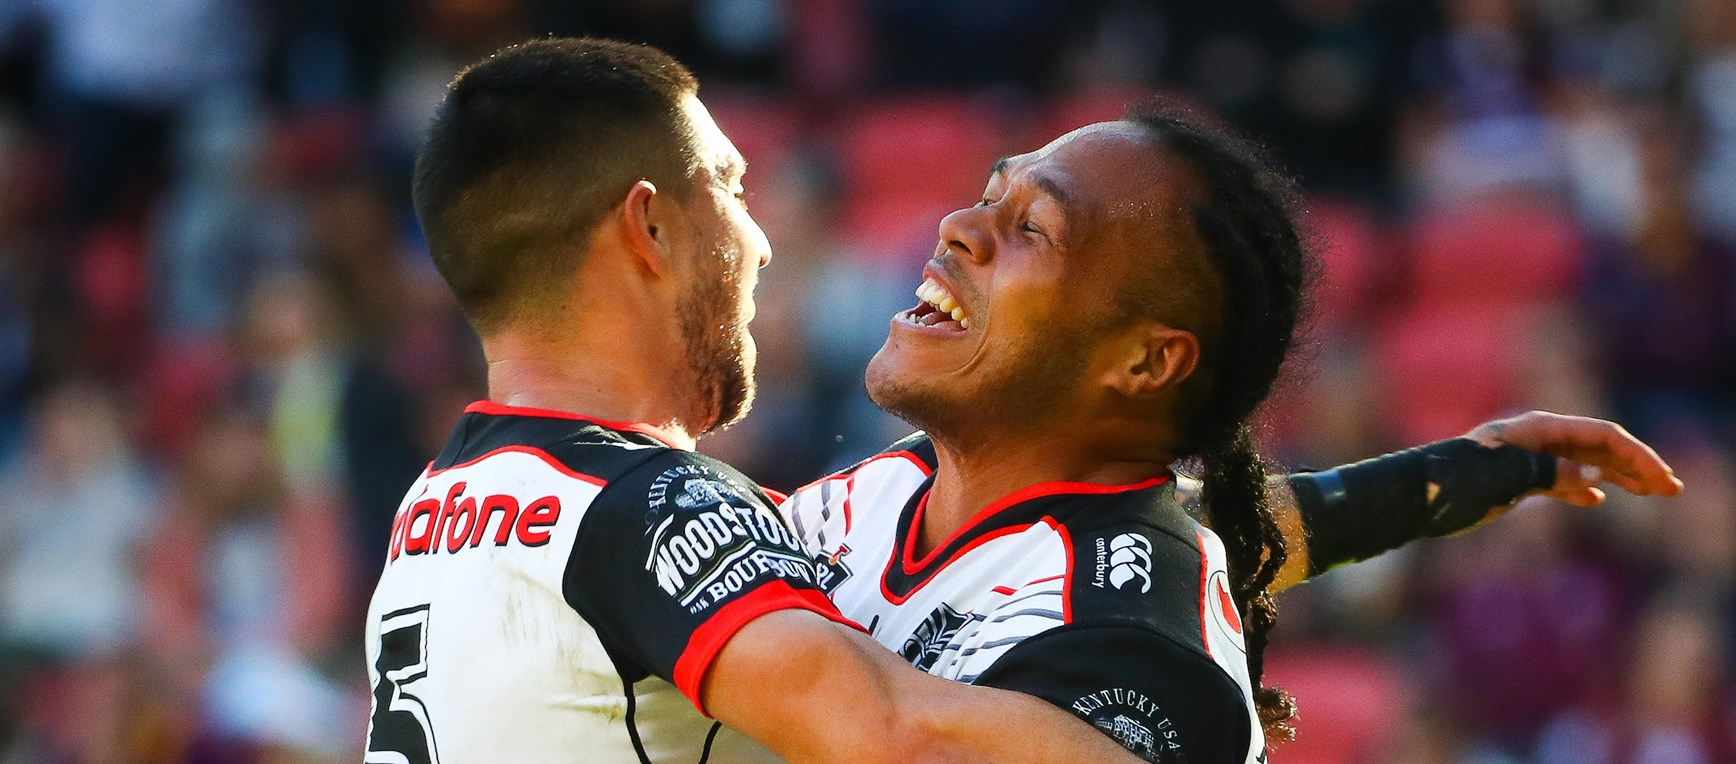 [Photos] Big win in Brisbane